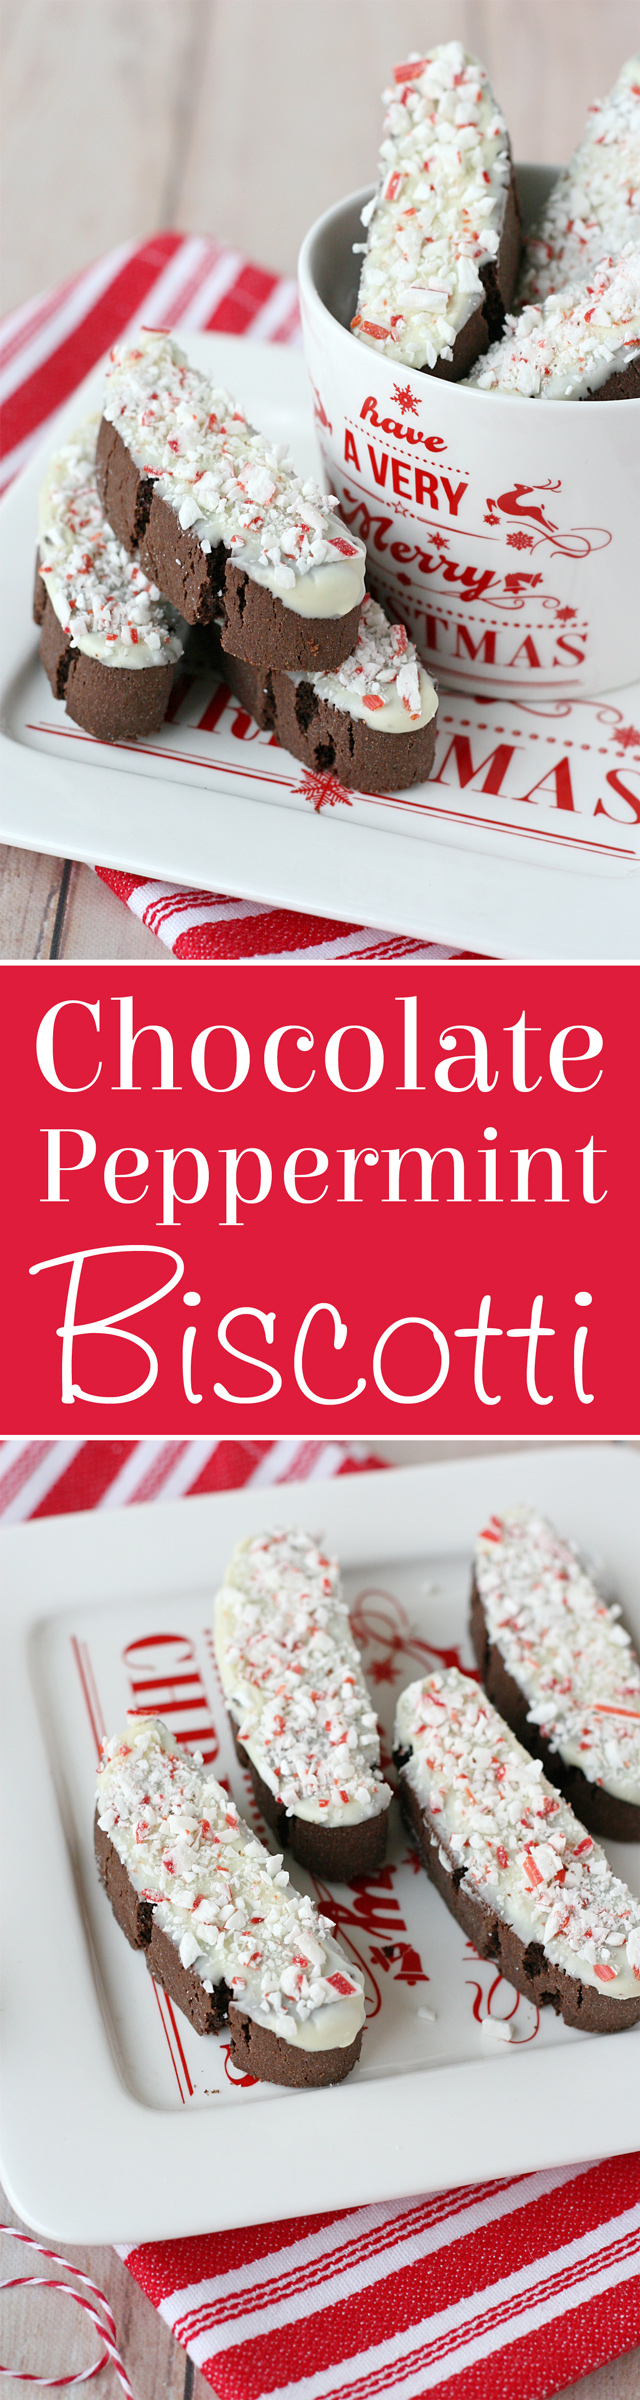 Delicious recipe for CHOCOLATE PEPPERMINT BISCOTTI